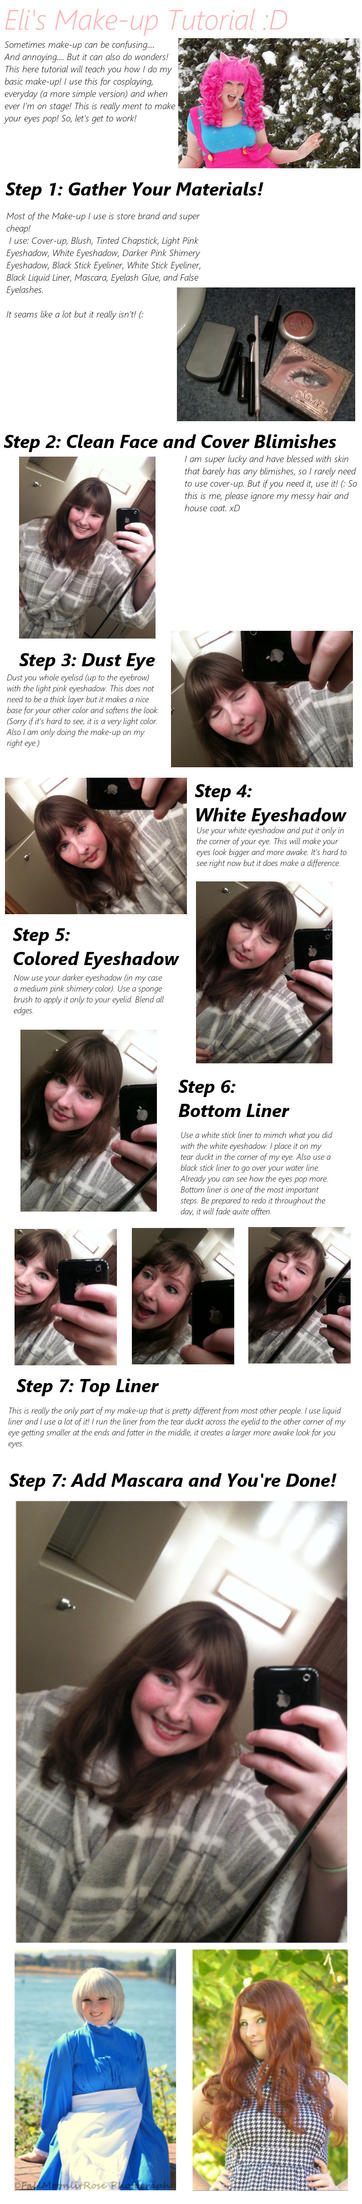 Cosplay Make-up Tutorial by Eli-Cosplay